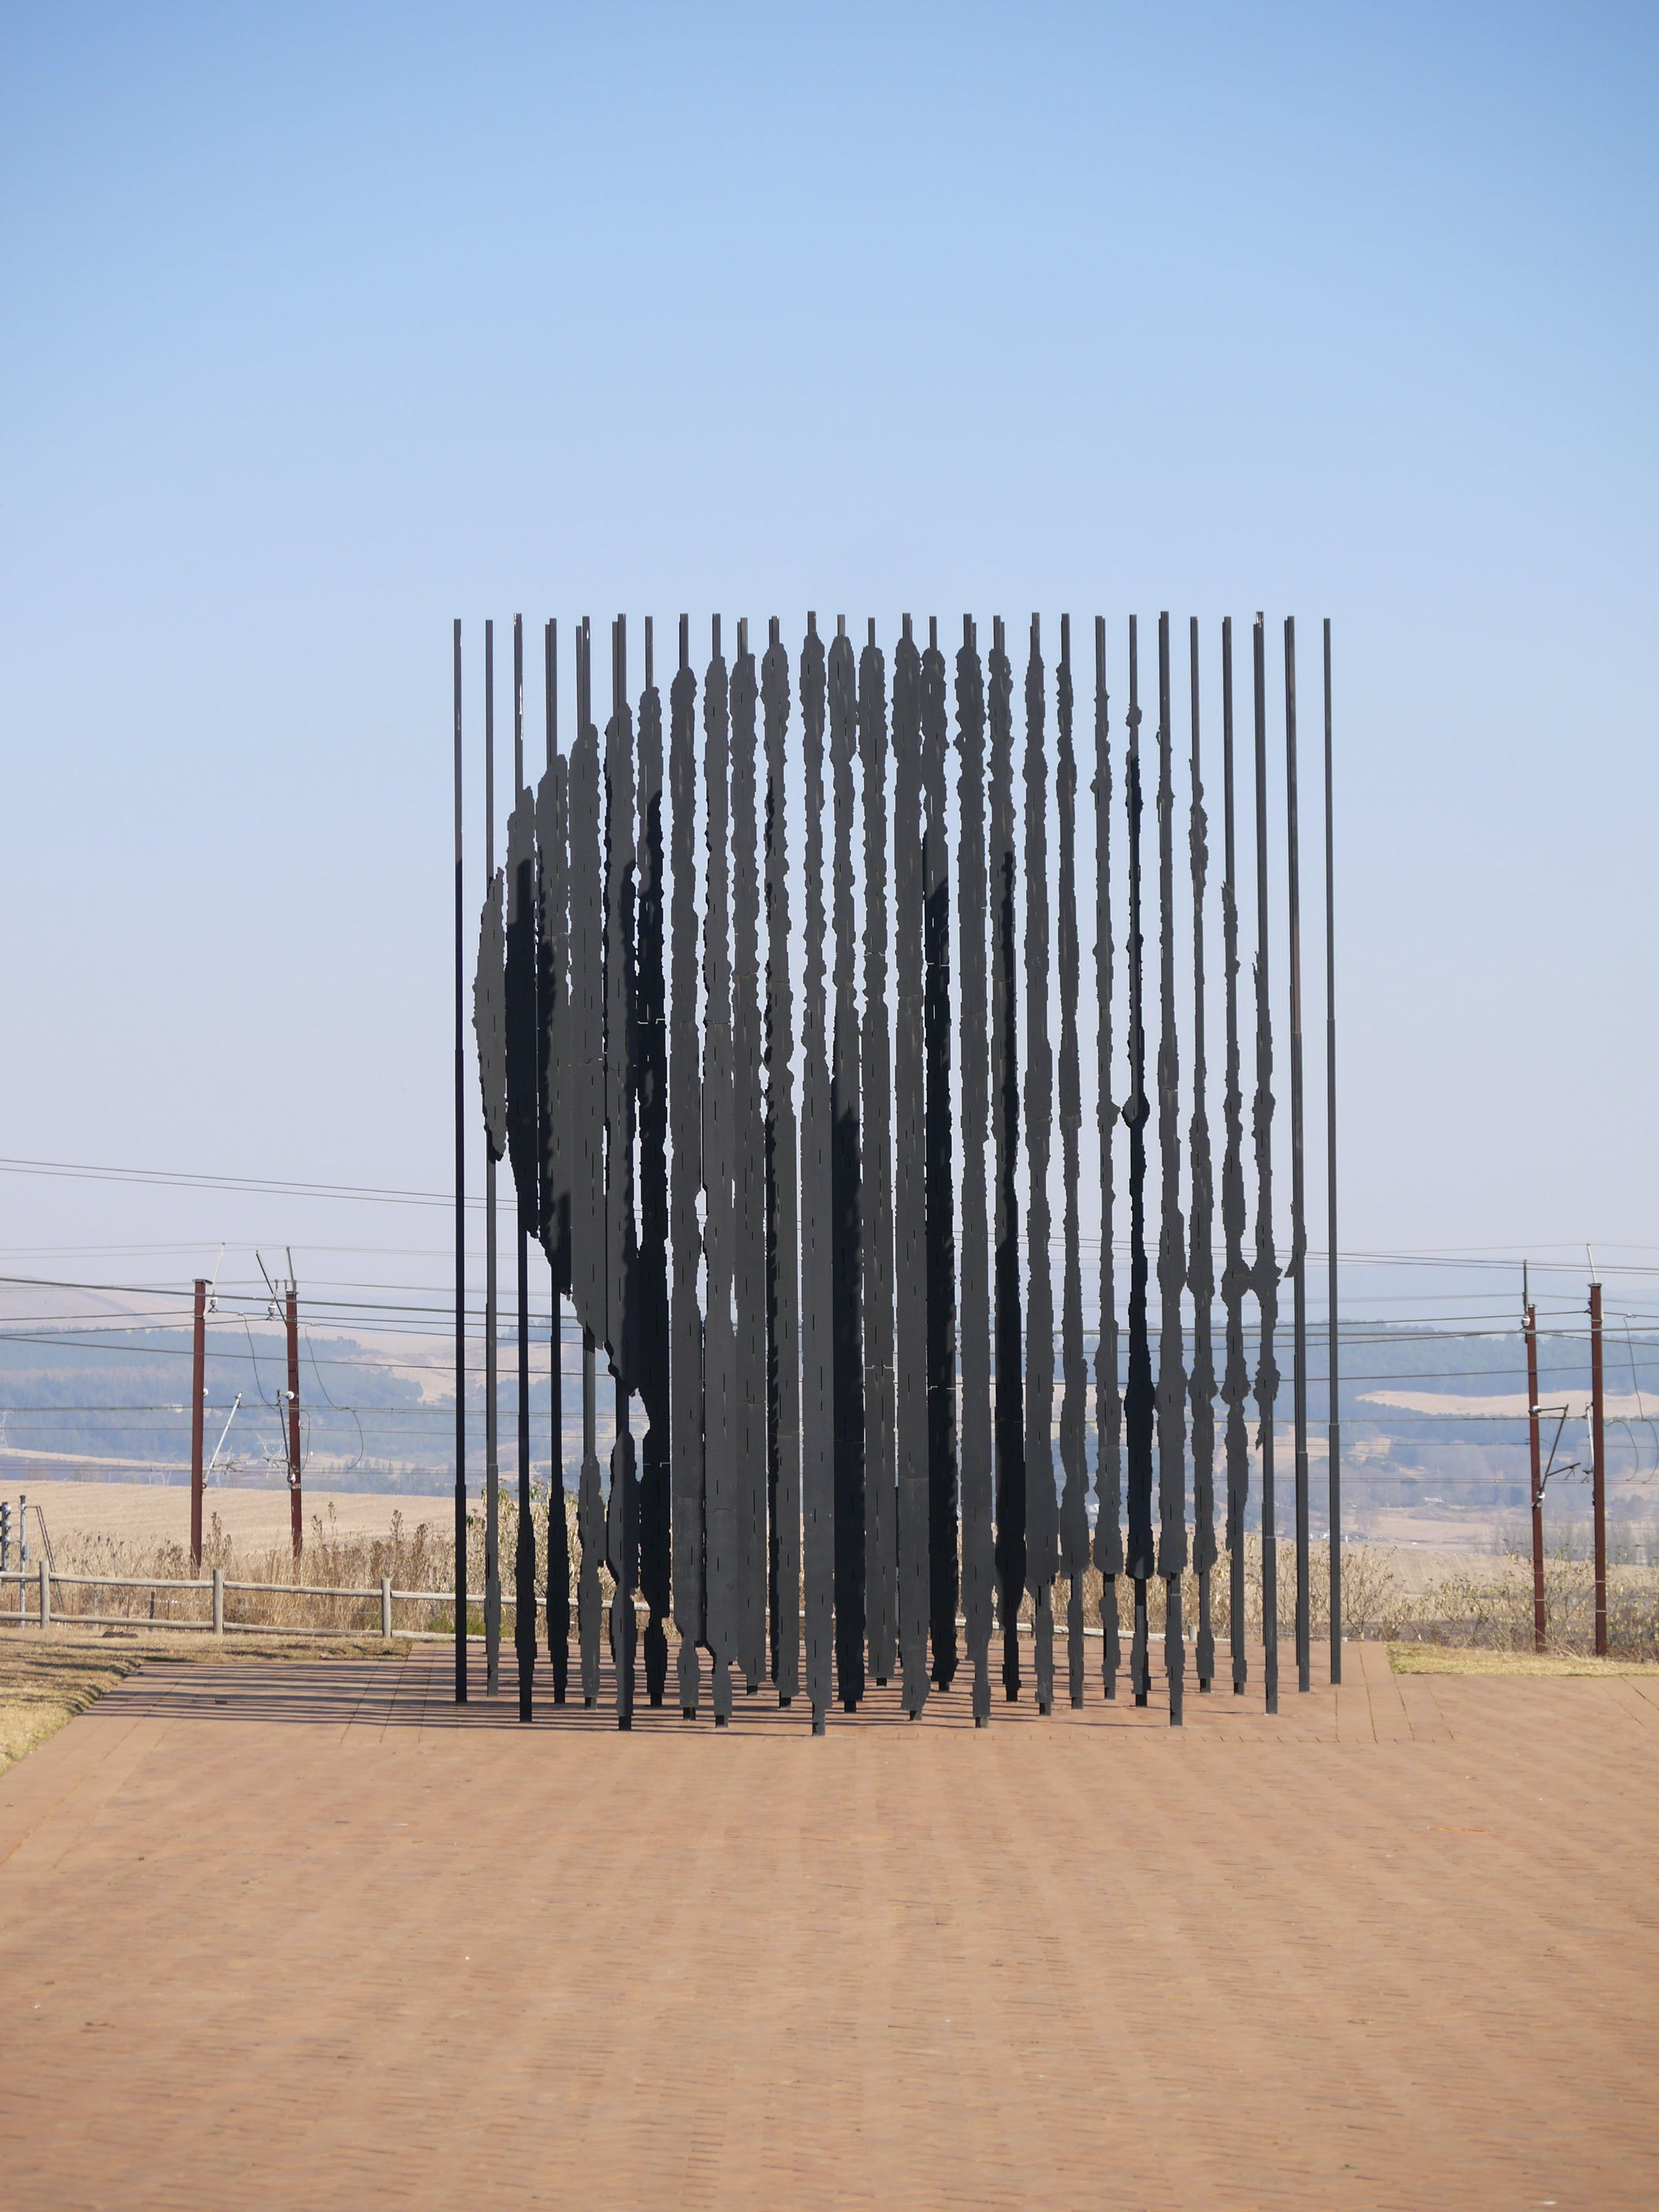 The Nelson Mandela Capture Site marks the spot where he was apprehended in 1952.